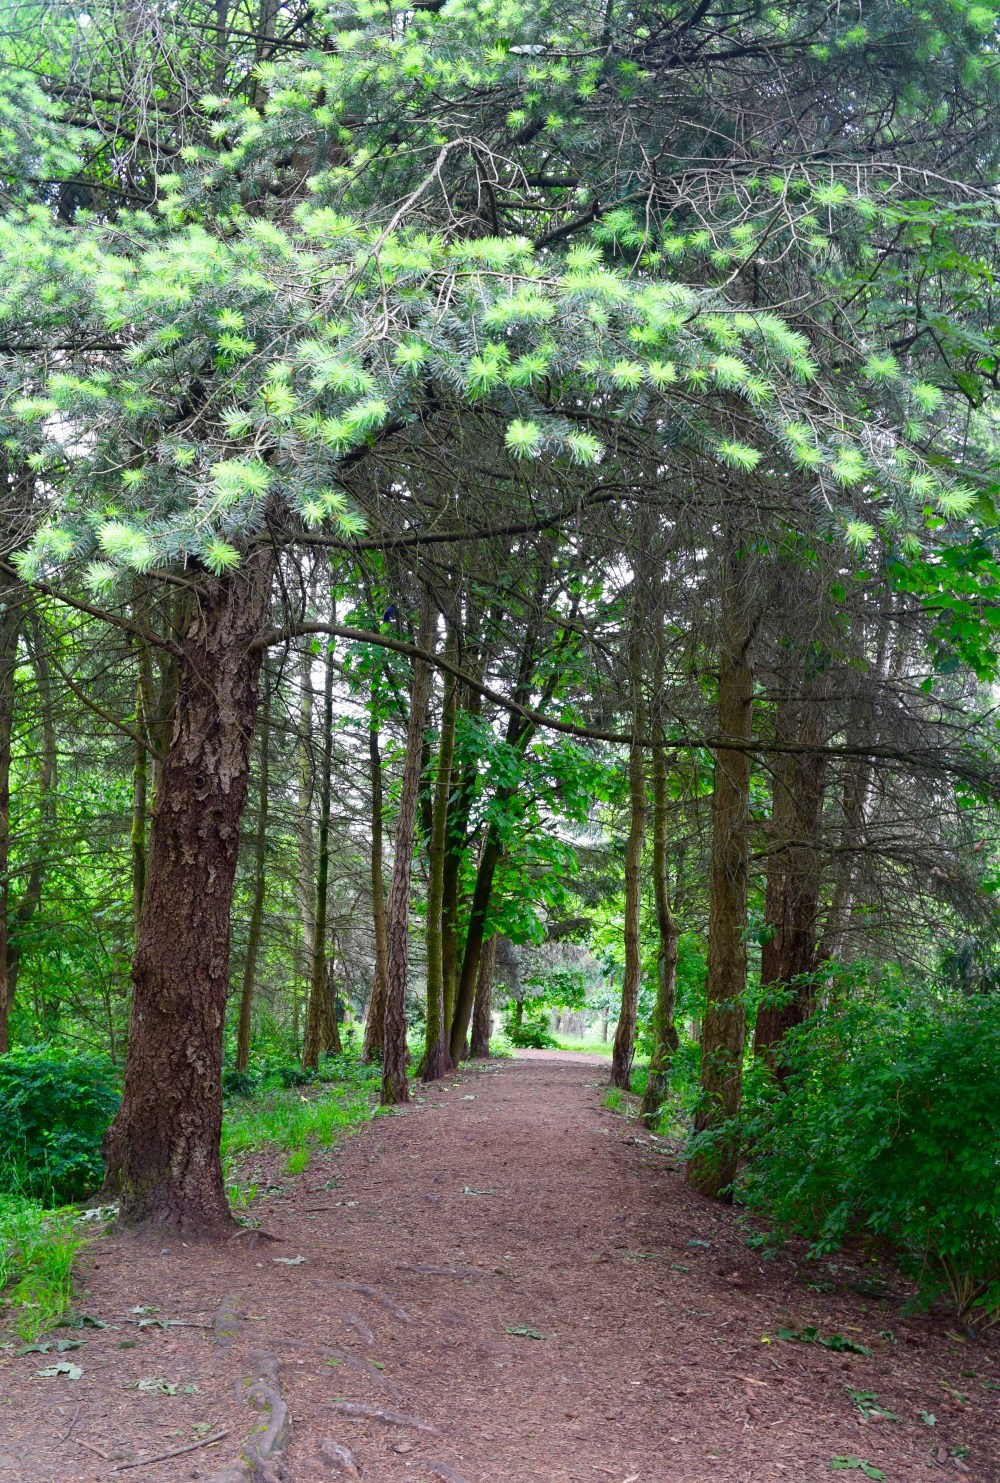 Walking in the woods - listening to birds, stop and breathe